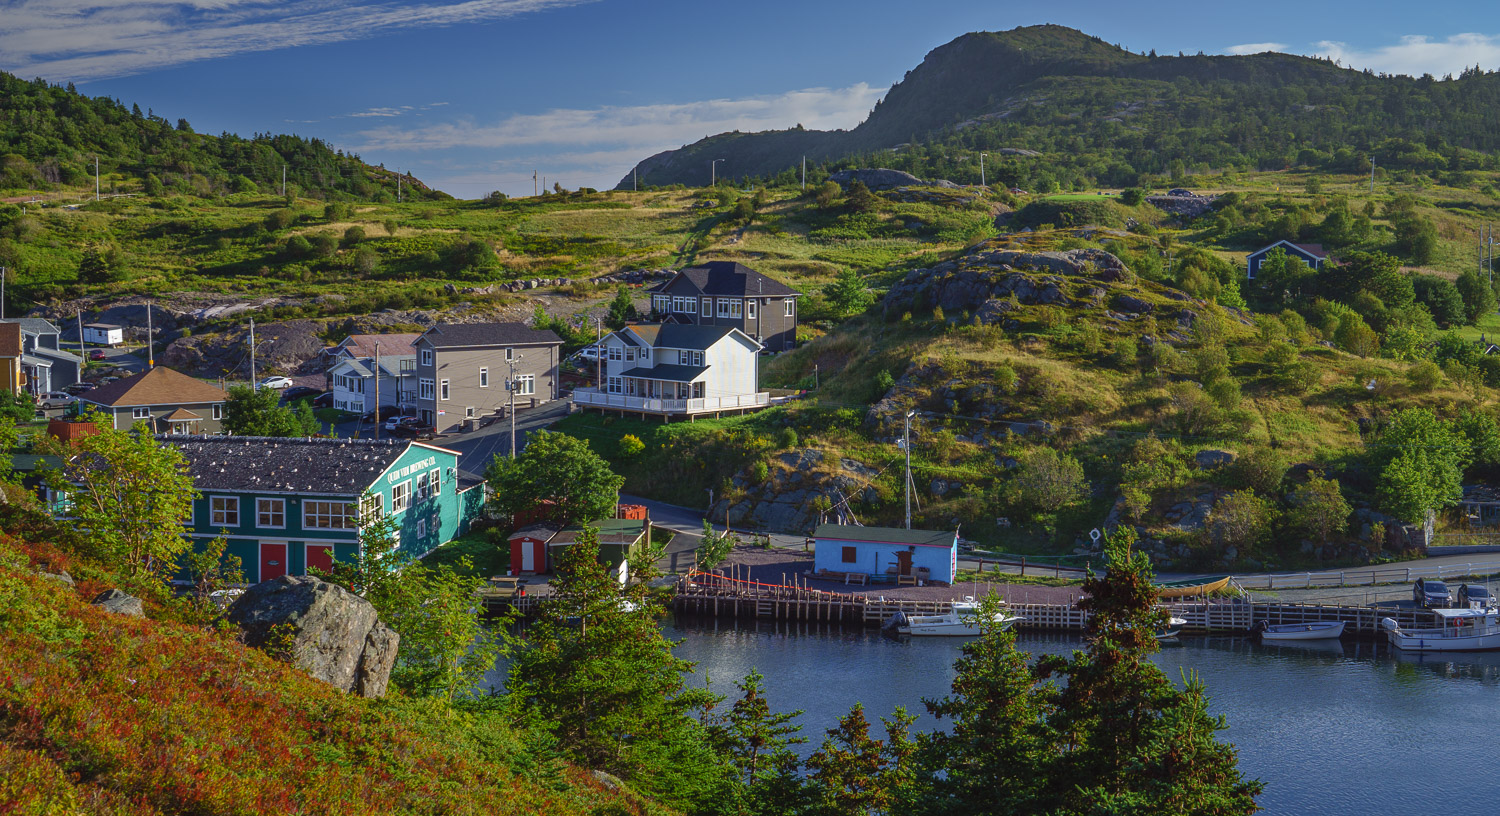 East coast trail - Quidi Vidi